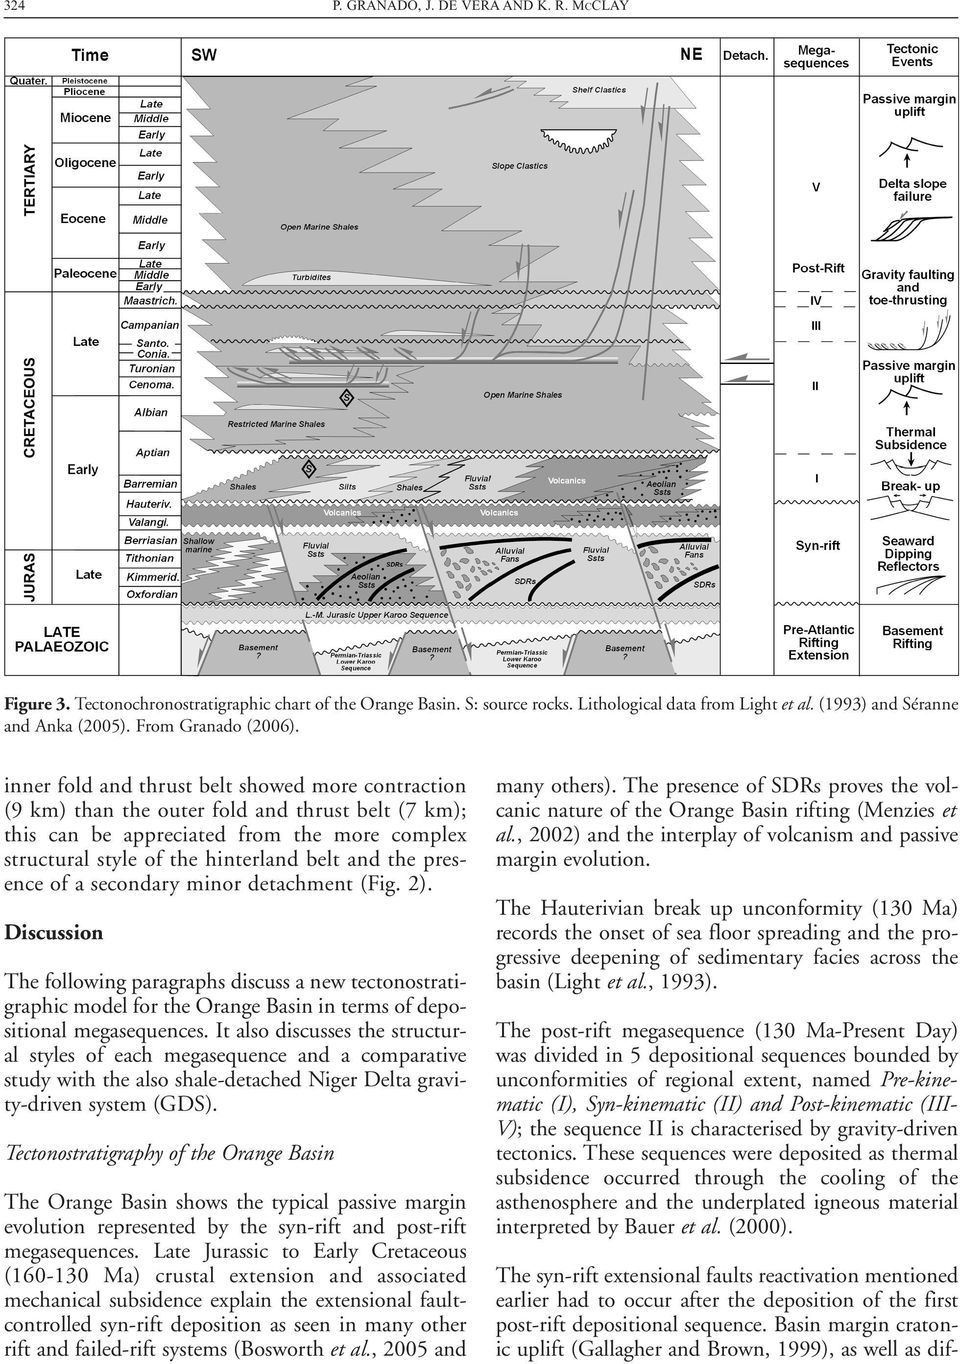 inner fold and thrust belt showed more contraction (9 km) than the outer fold and thrust belt (7 km); this can be appreciated from the more complex structural style of the hinterland belt and the